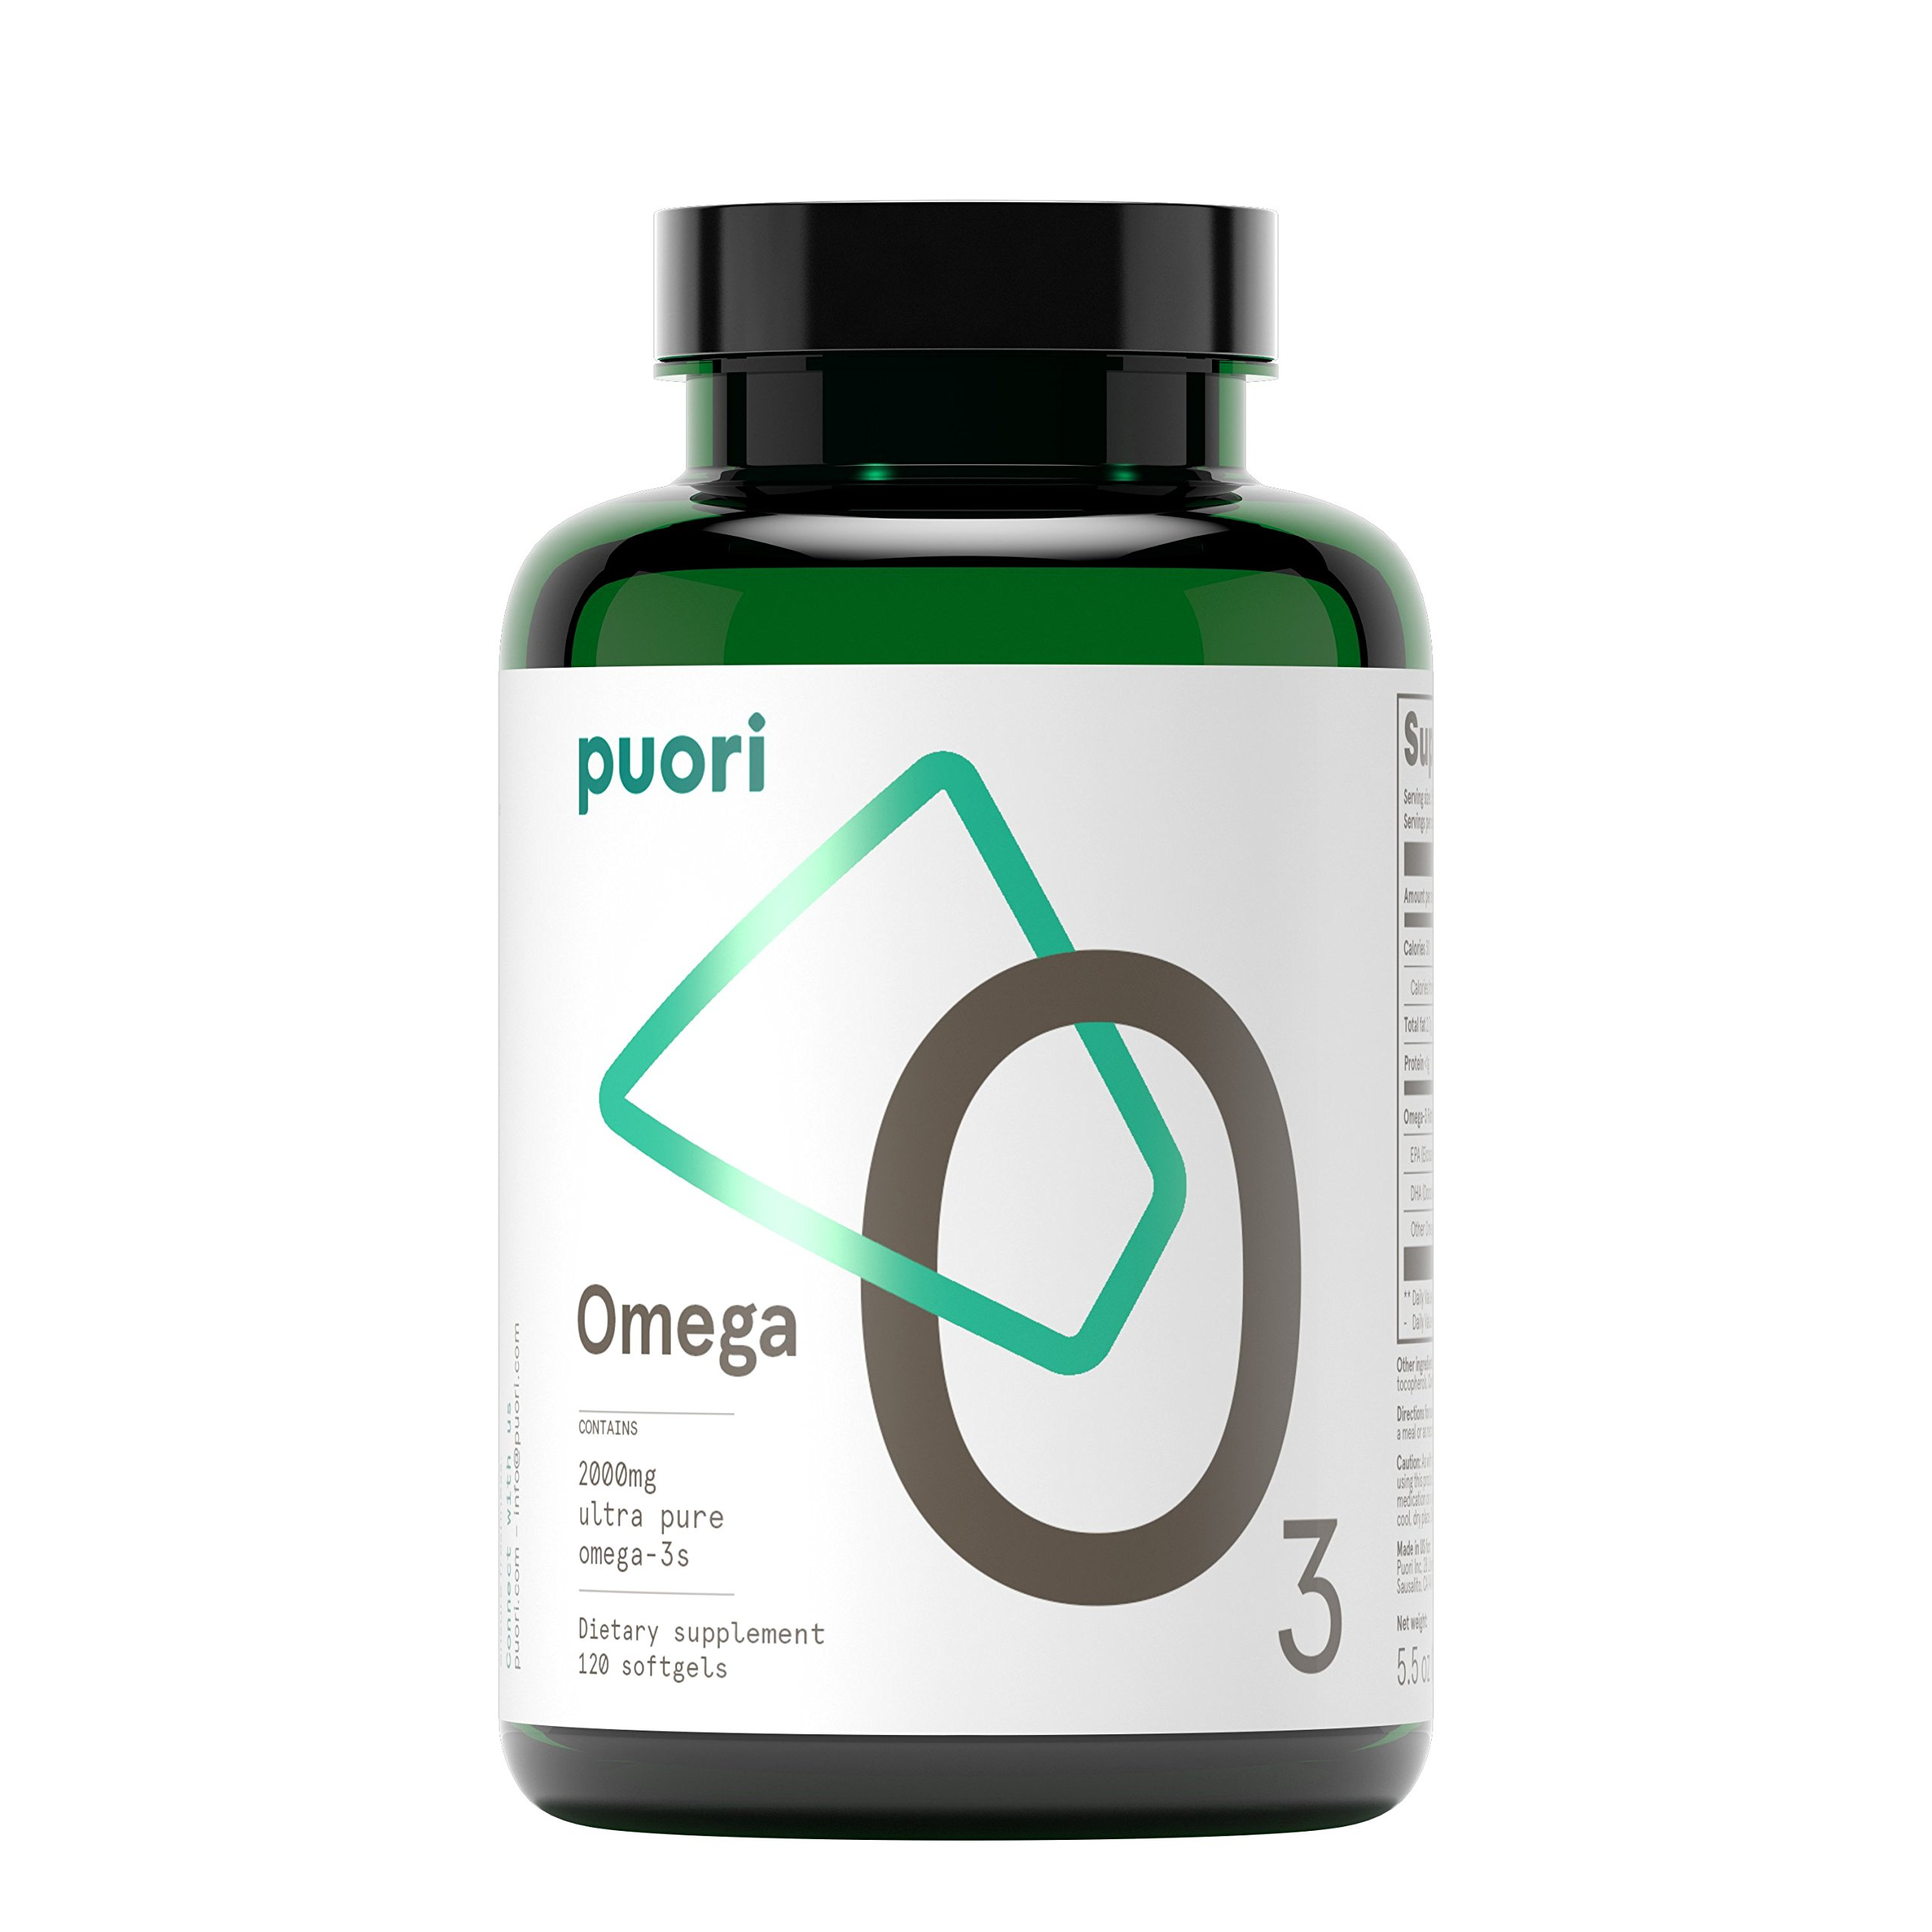 Puori - O3 Ultra Pure Omega 3 Fish Oil, IFOS Certified, Non-GMO, 2000mg EPA 1250mg DHA 500mg, 120 Softgel